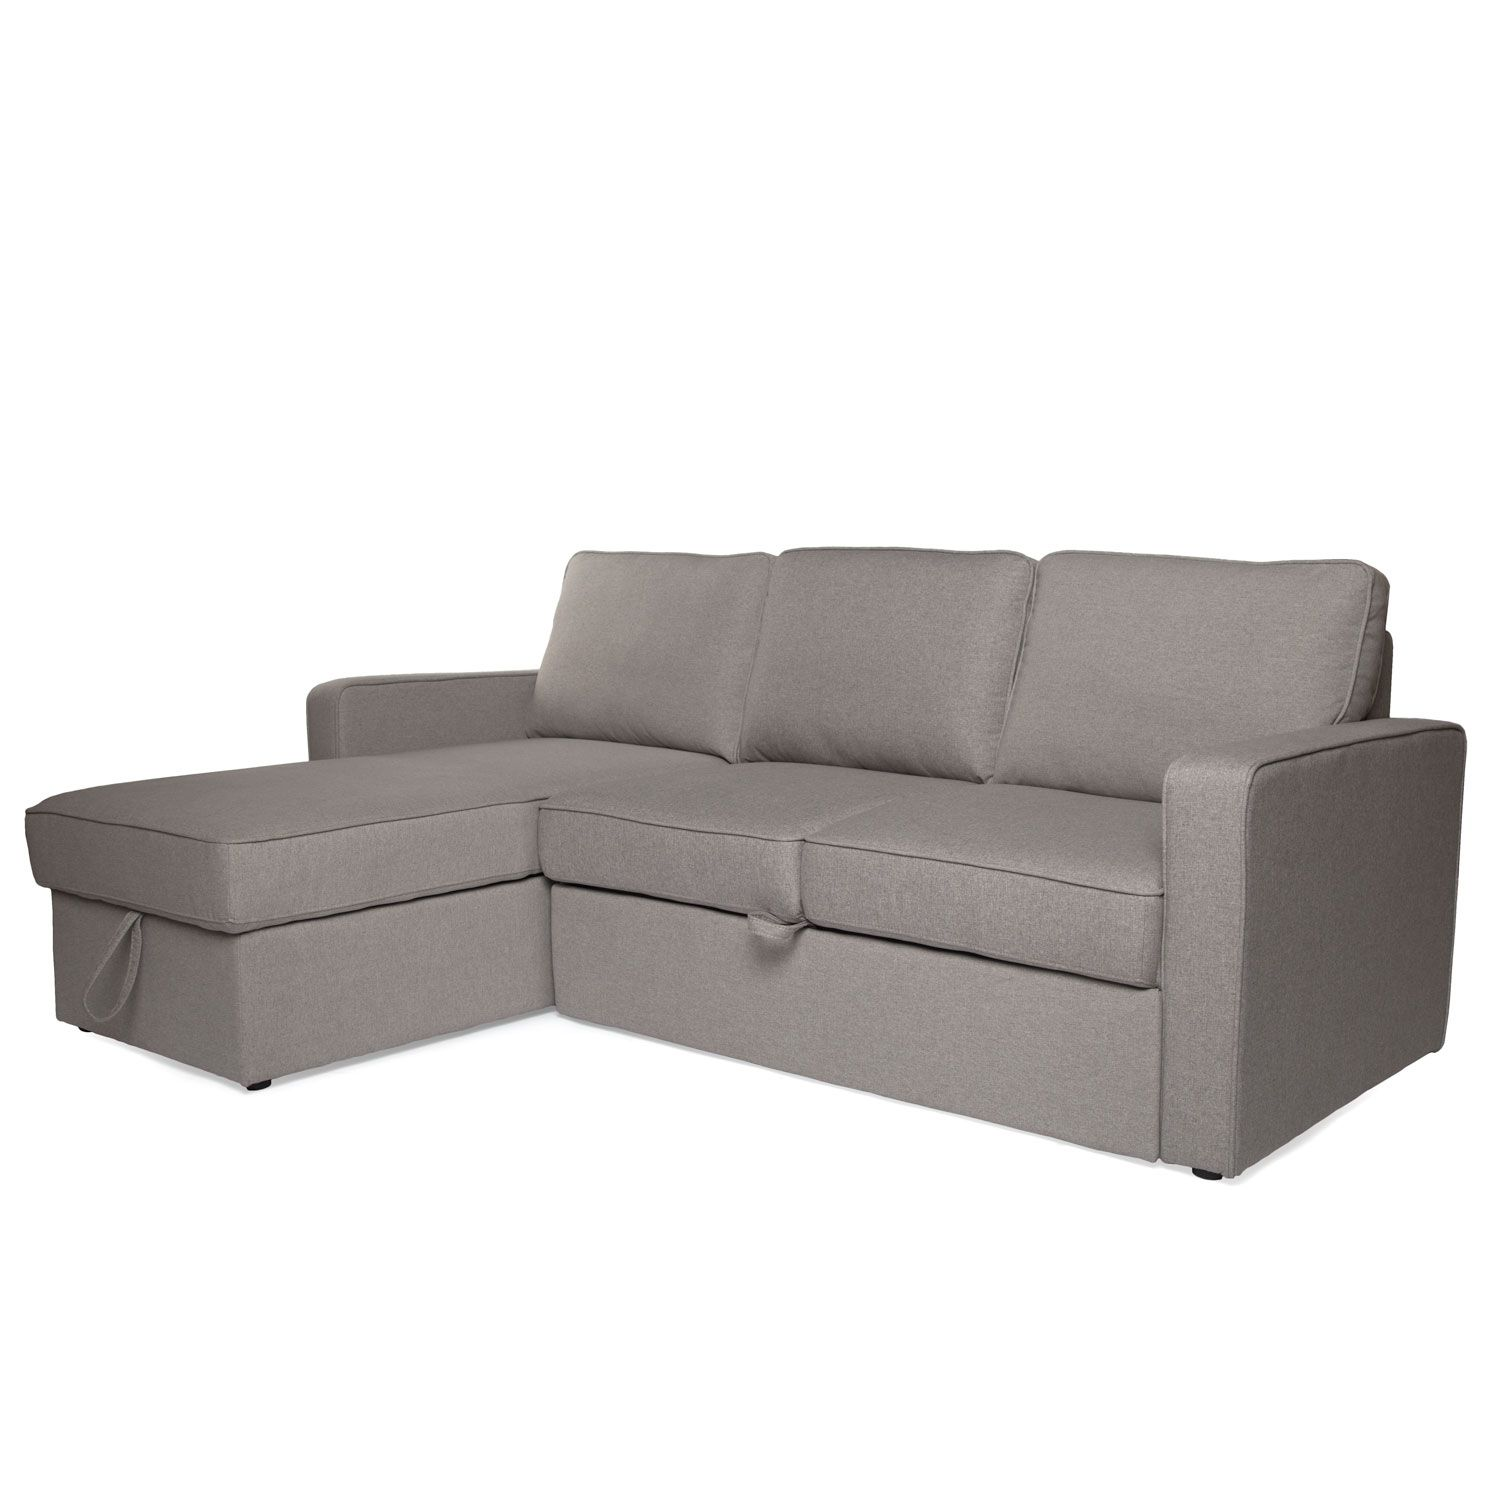 Astounding Renton Sectional Sofa Bed With Storage Light Grey In Machost Co Dining Chair Design Ideas Machostcouk